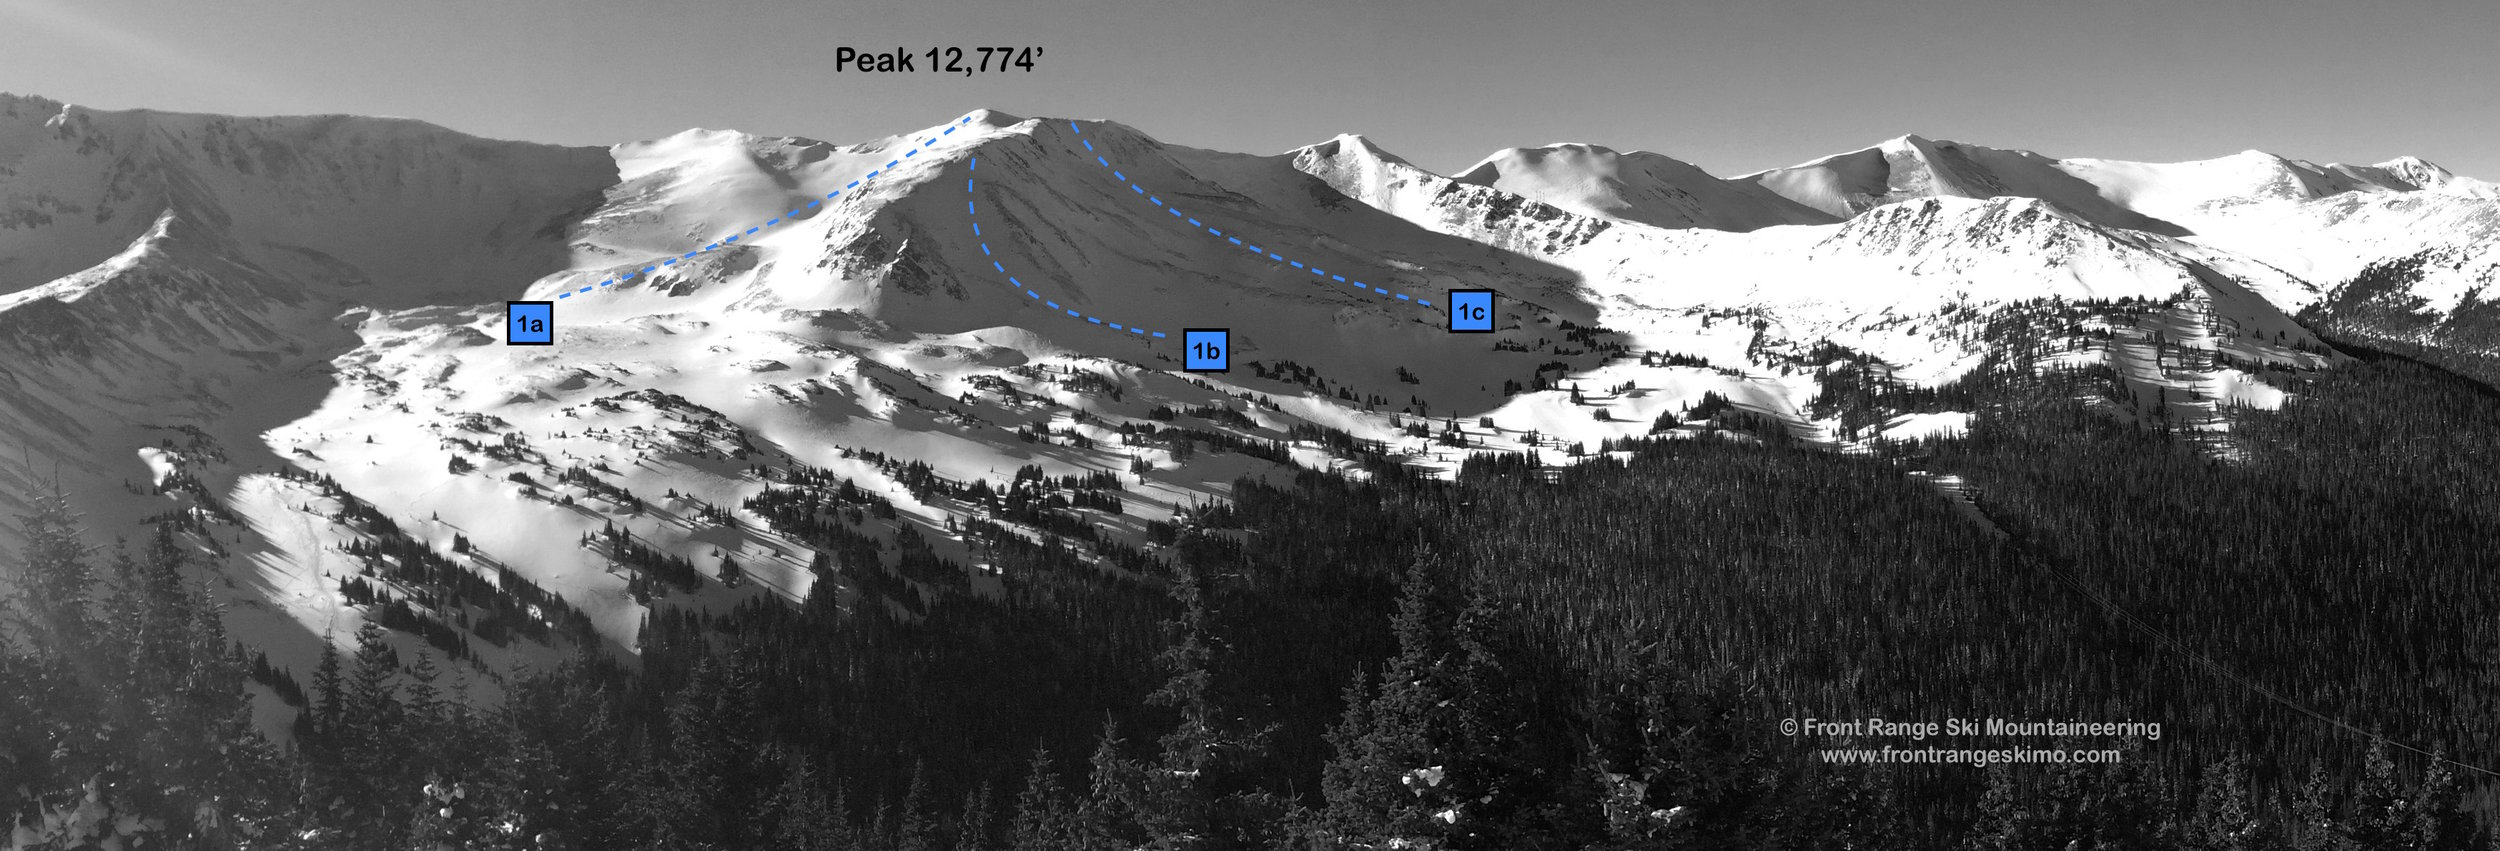 Peak 12,774' from the east.